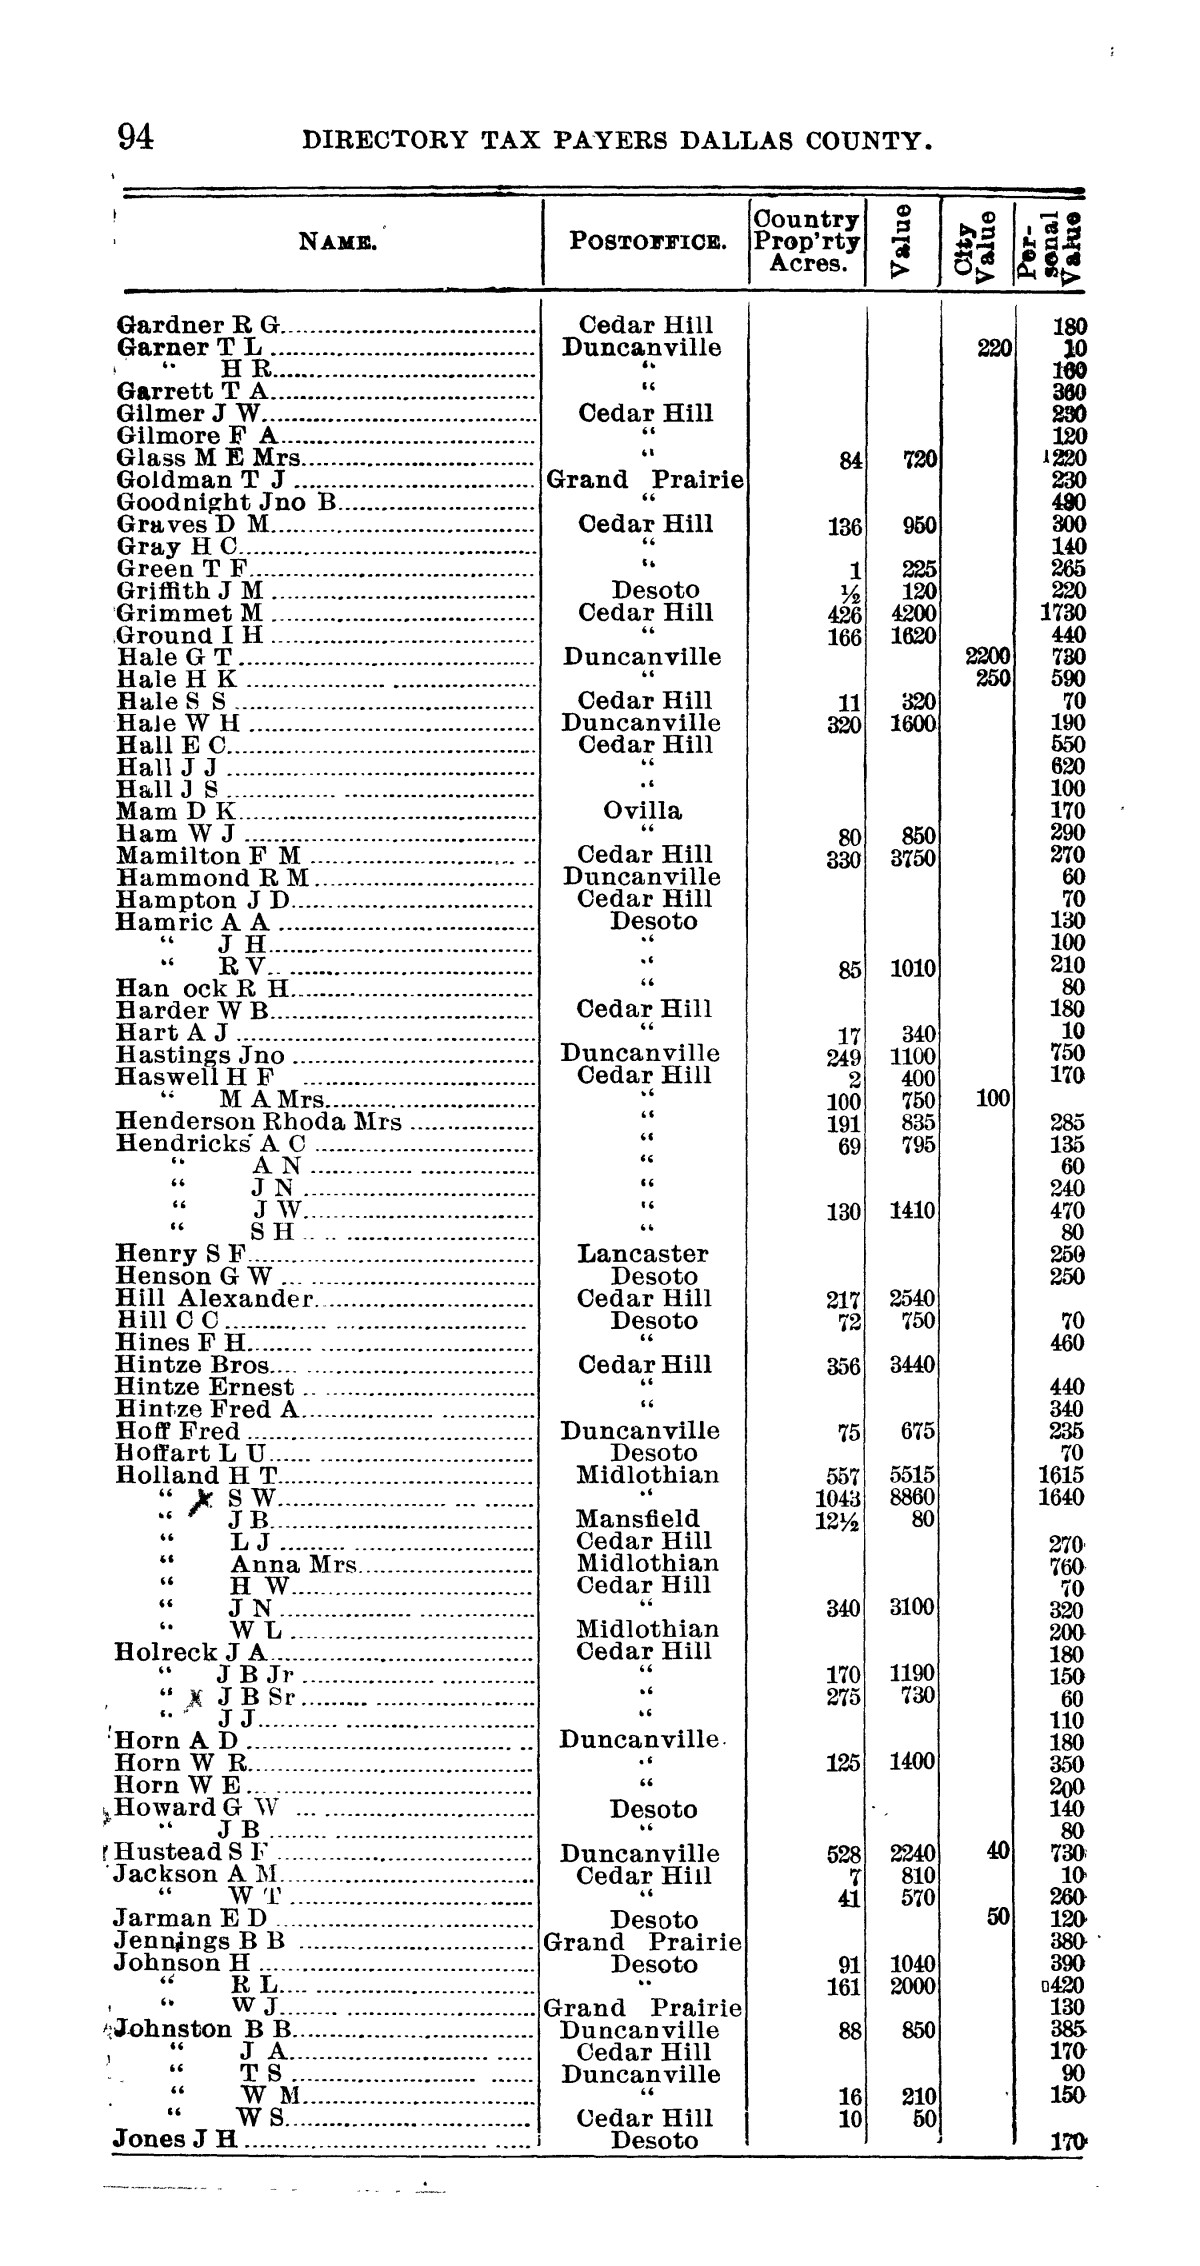 Official directory, taxpayers of Dallas County, Texas                                                                                                      95